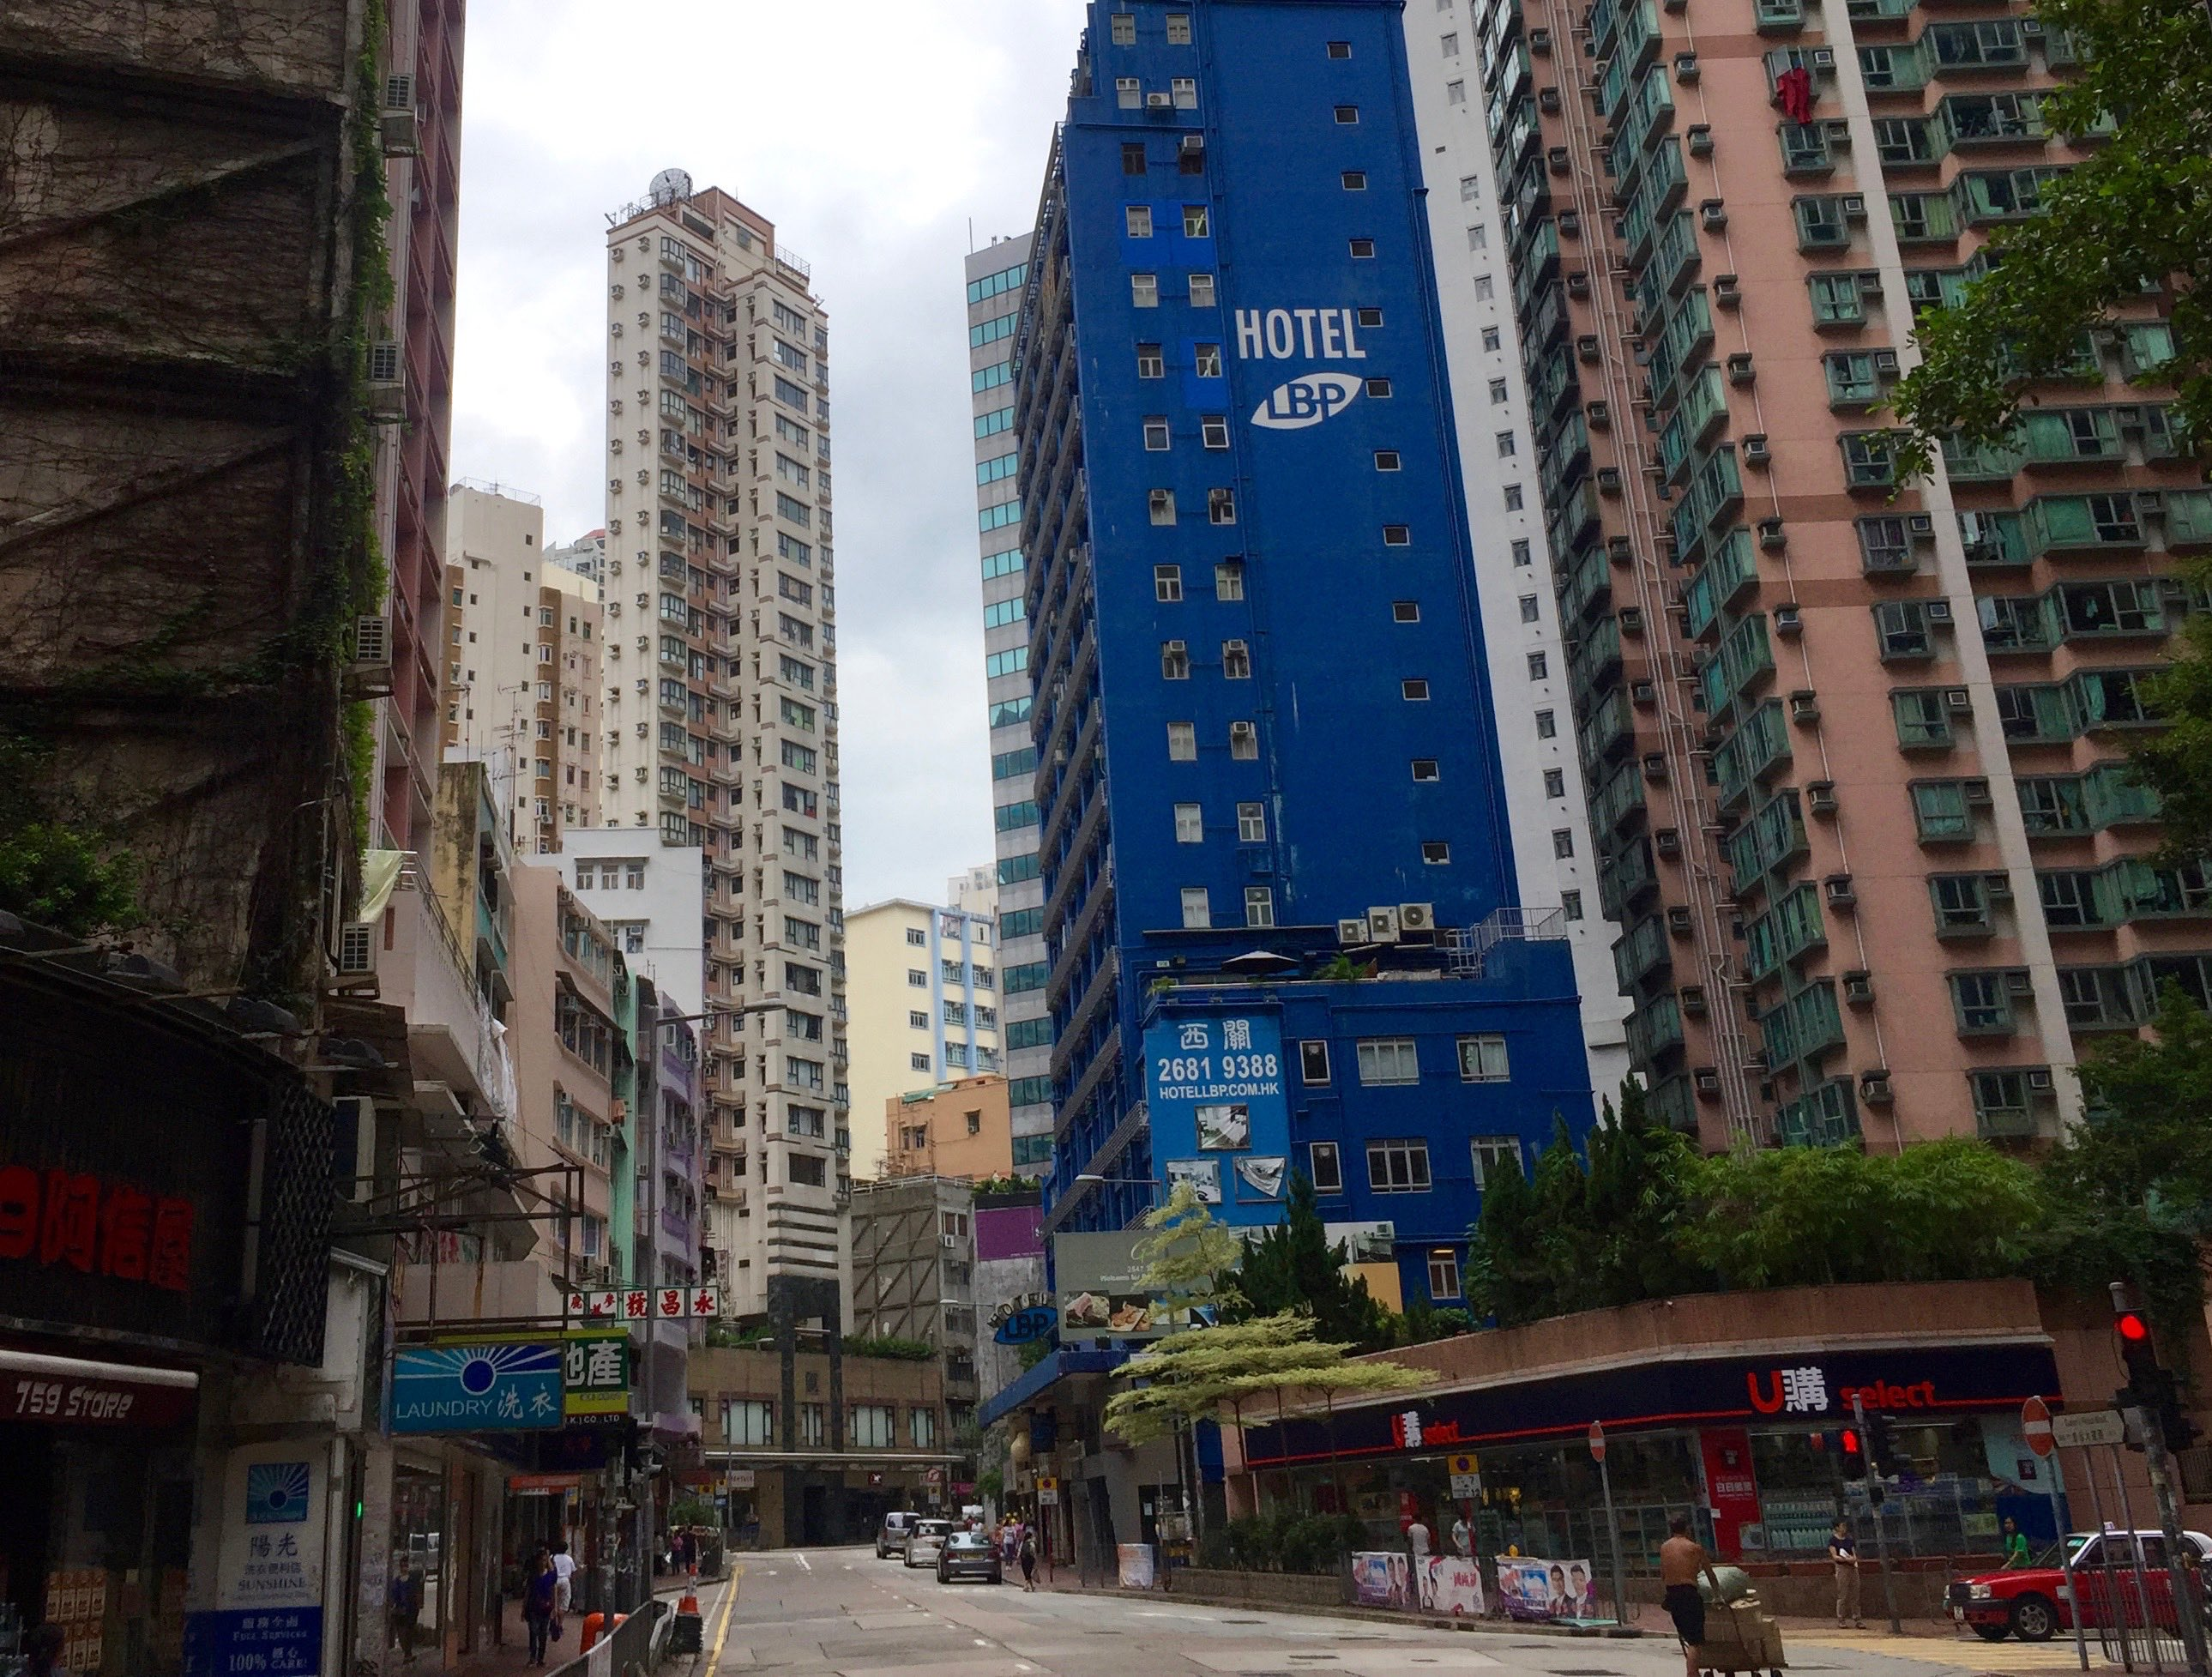 Hong Kong Queen's Road West linking Sheung Wan from Queen's Road Central easy access to foodie traffic